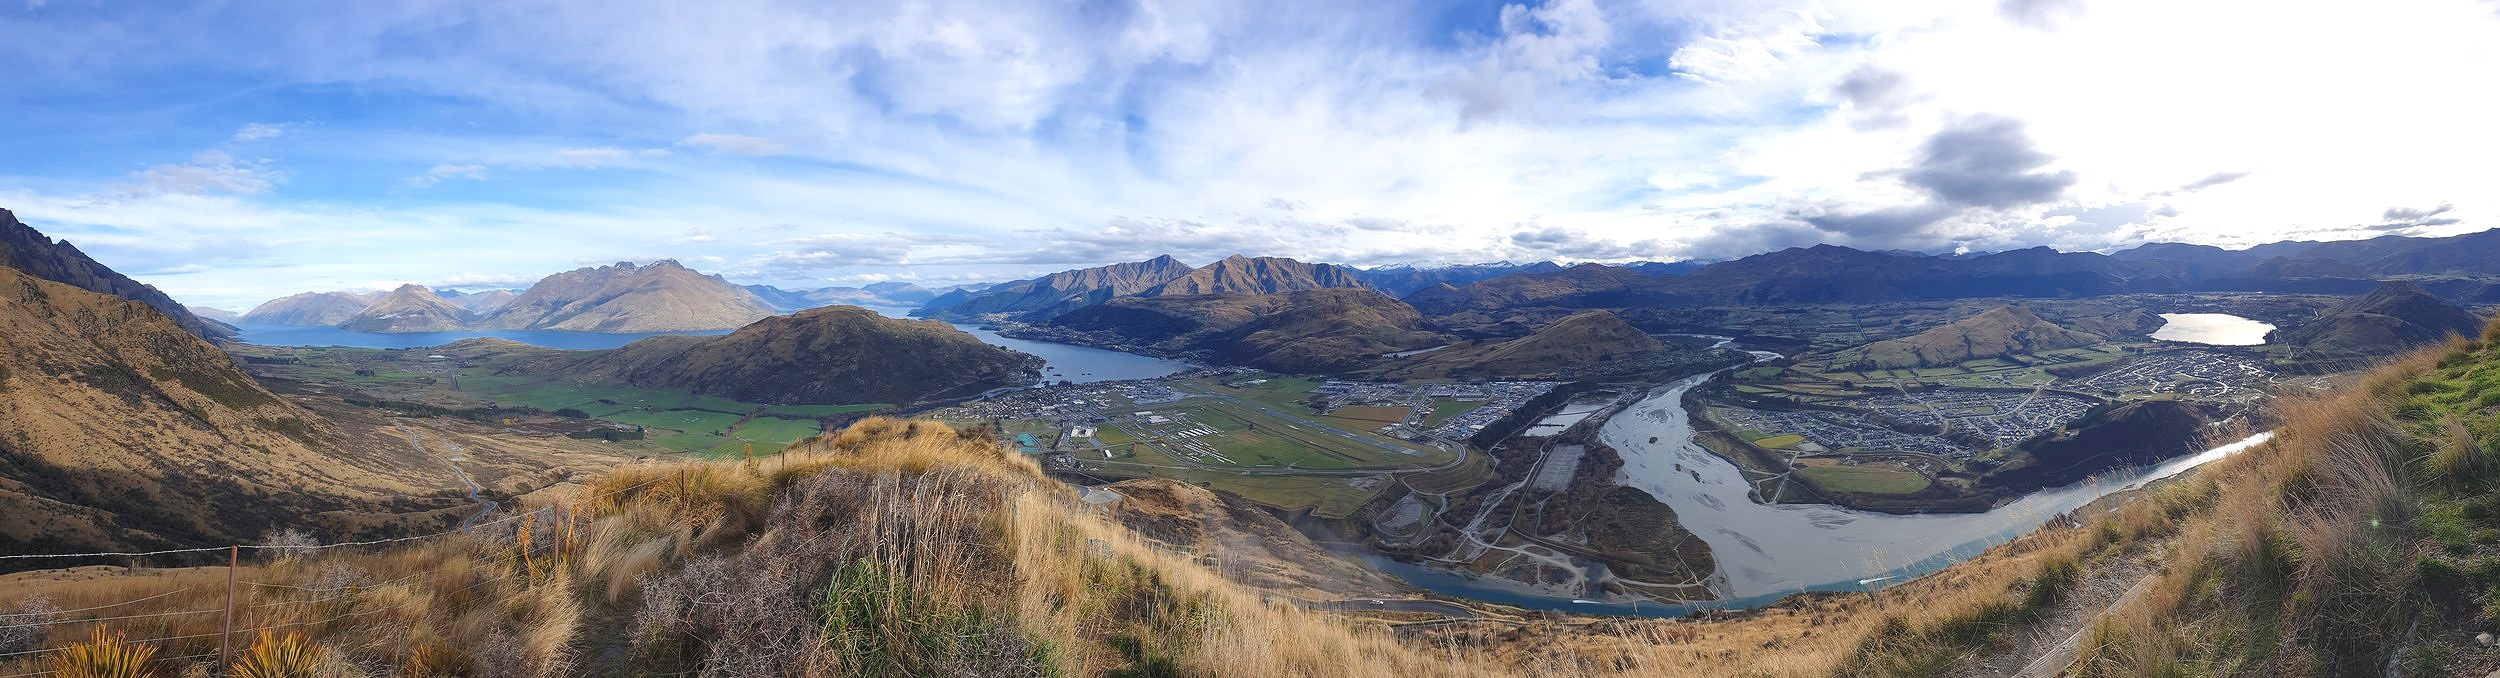 The view over the Wakatipu Basin from The Remarkables Lookout